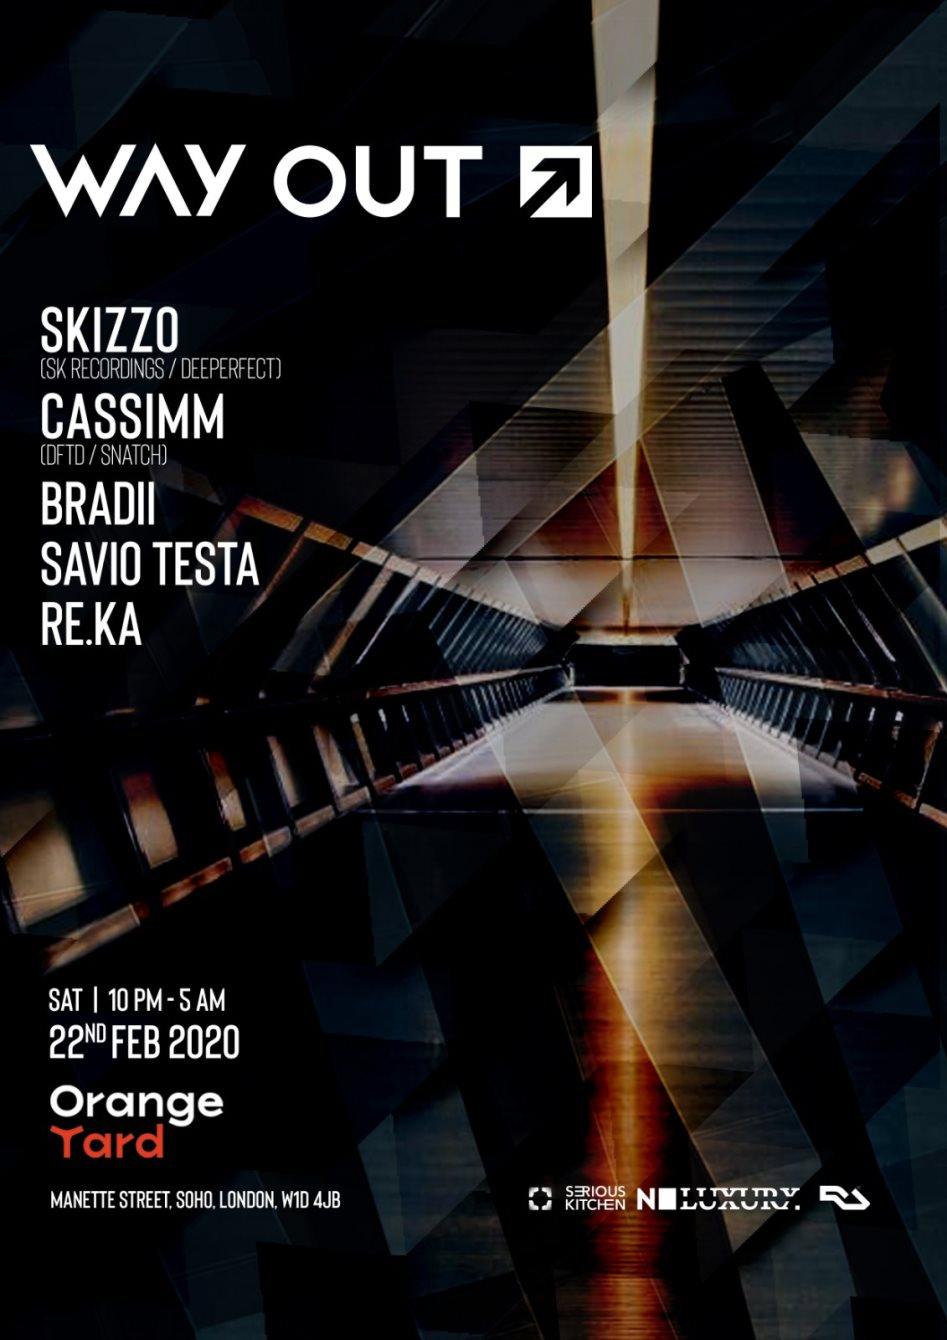 Way Out with Skizzo (SK Recordings), CASSIMM - Flyer front